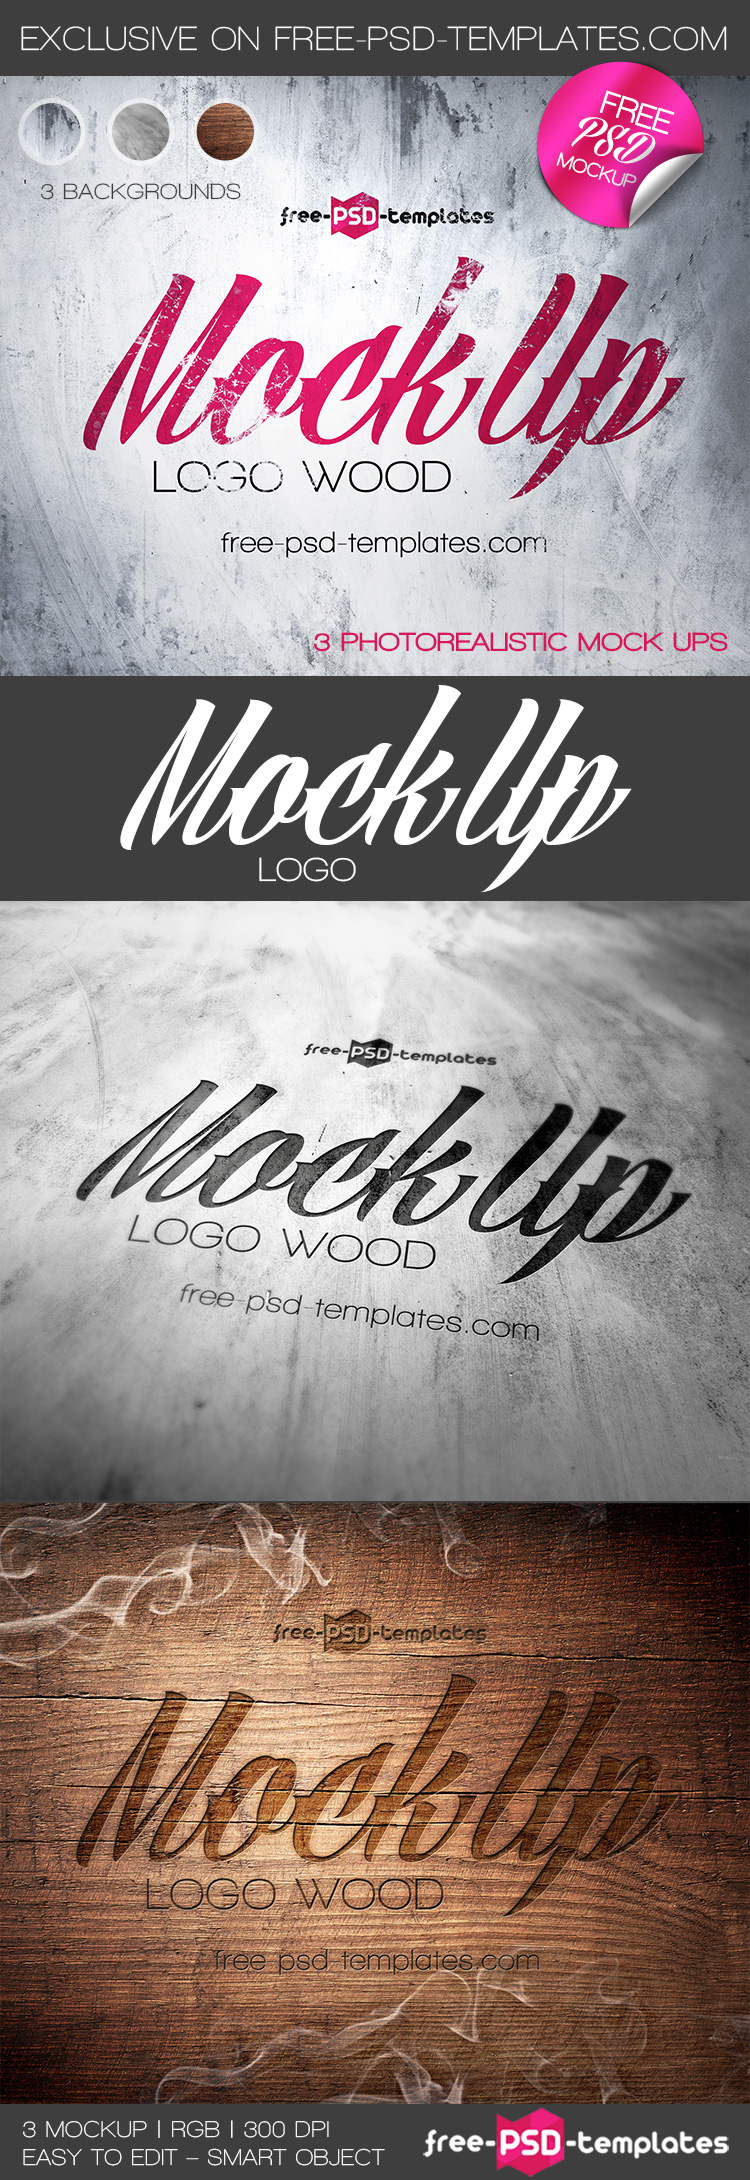 Bigpreview_free-logo-mock-up-in-psd